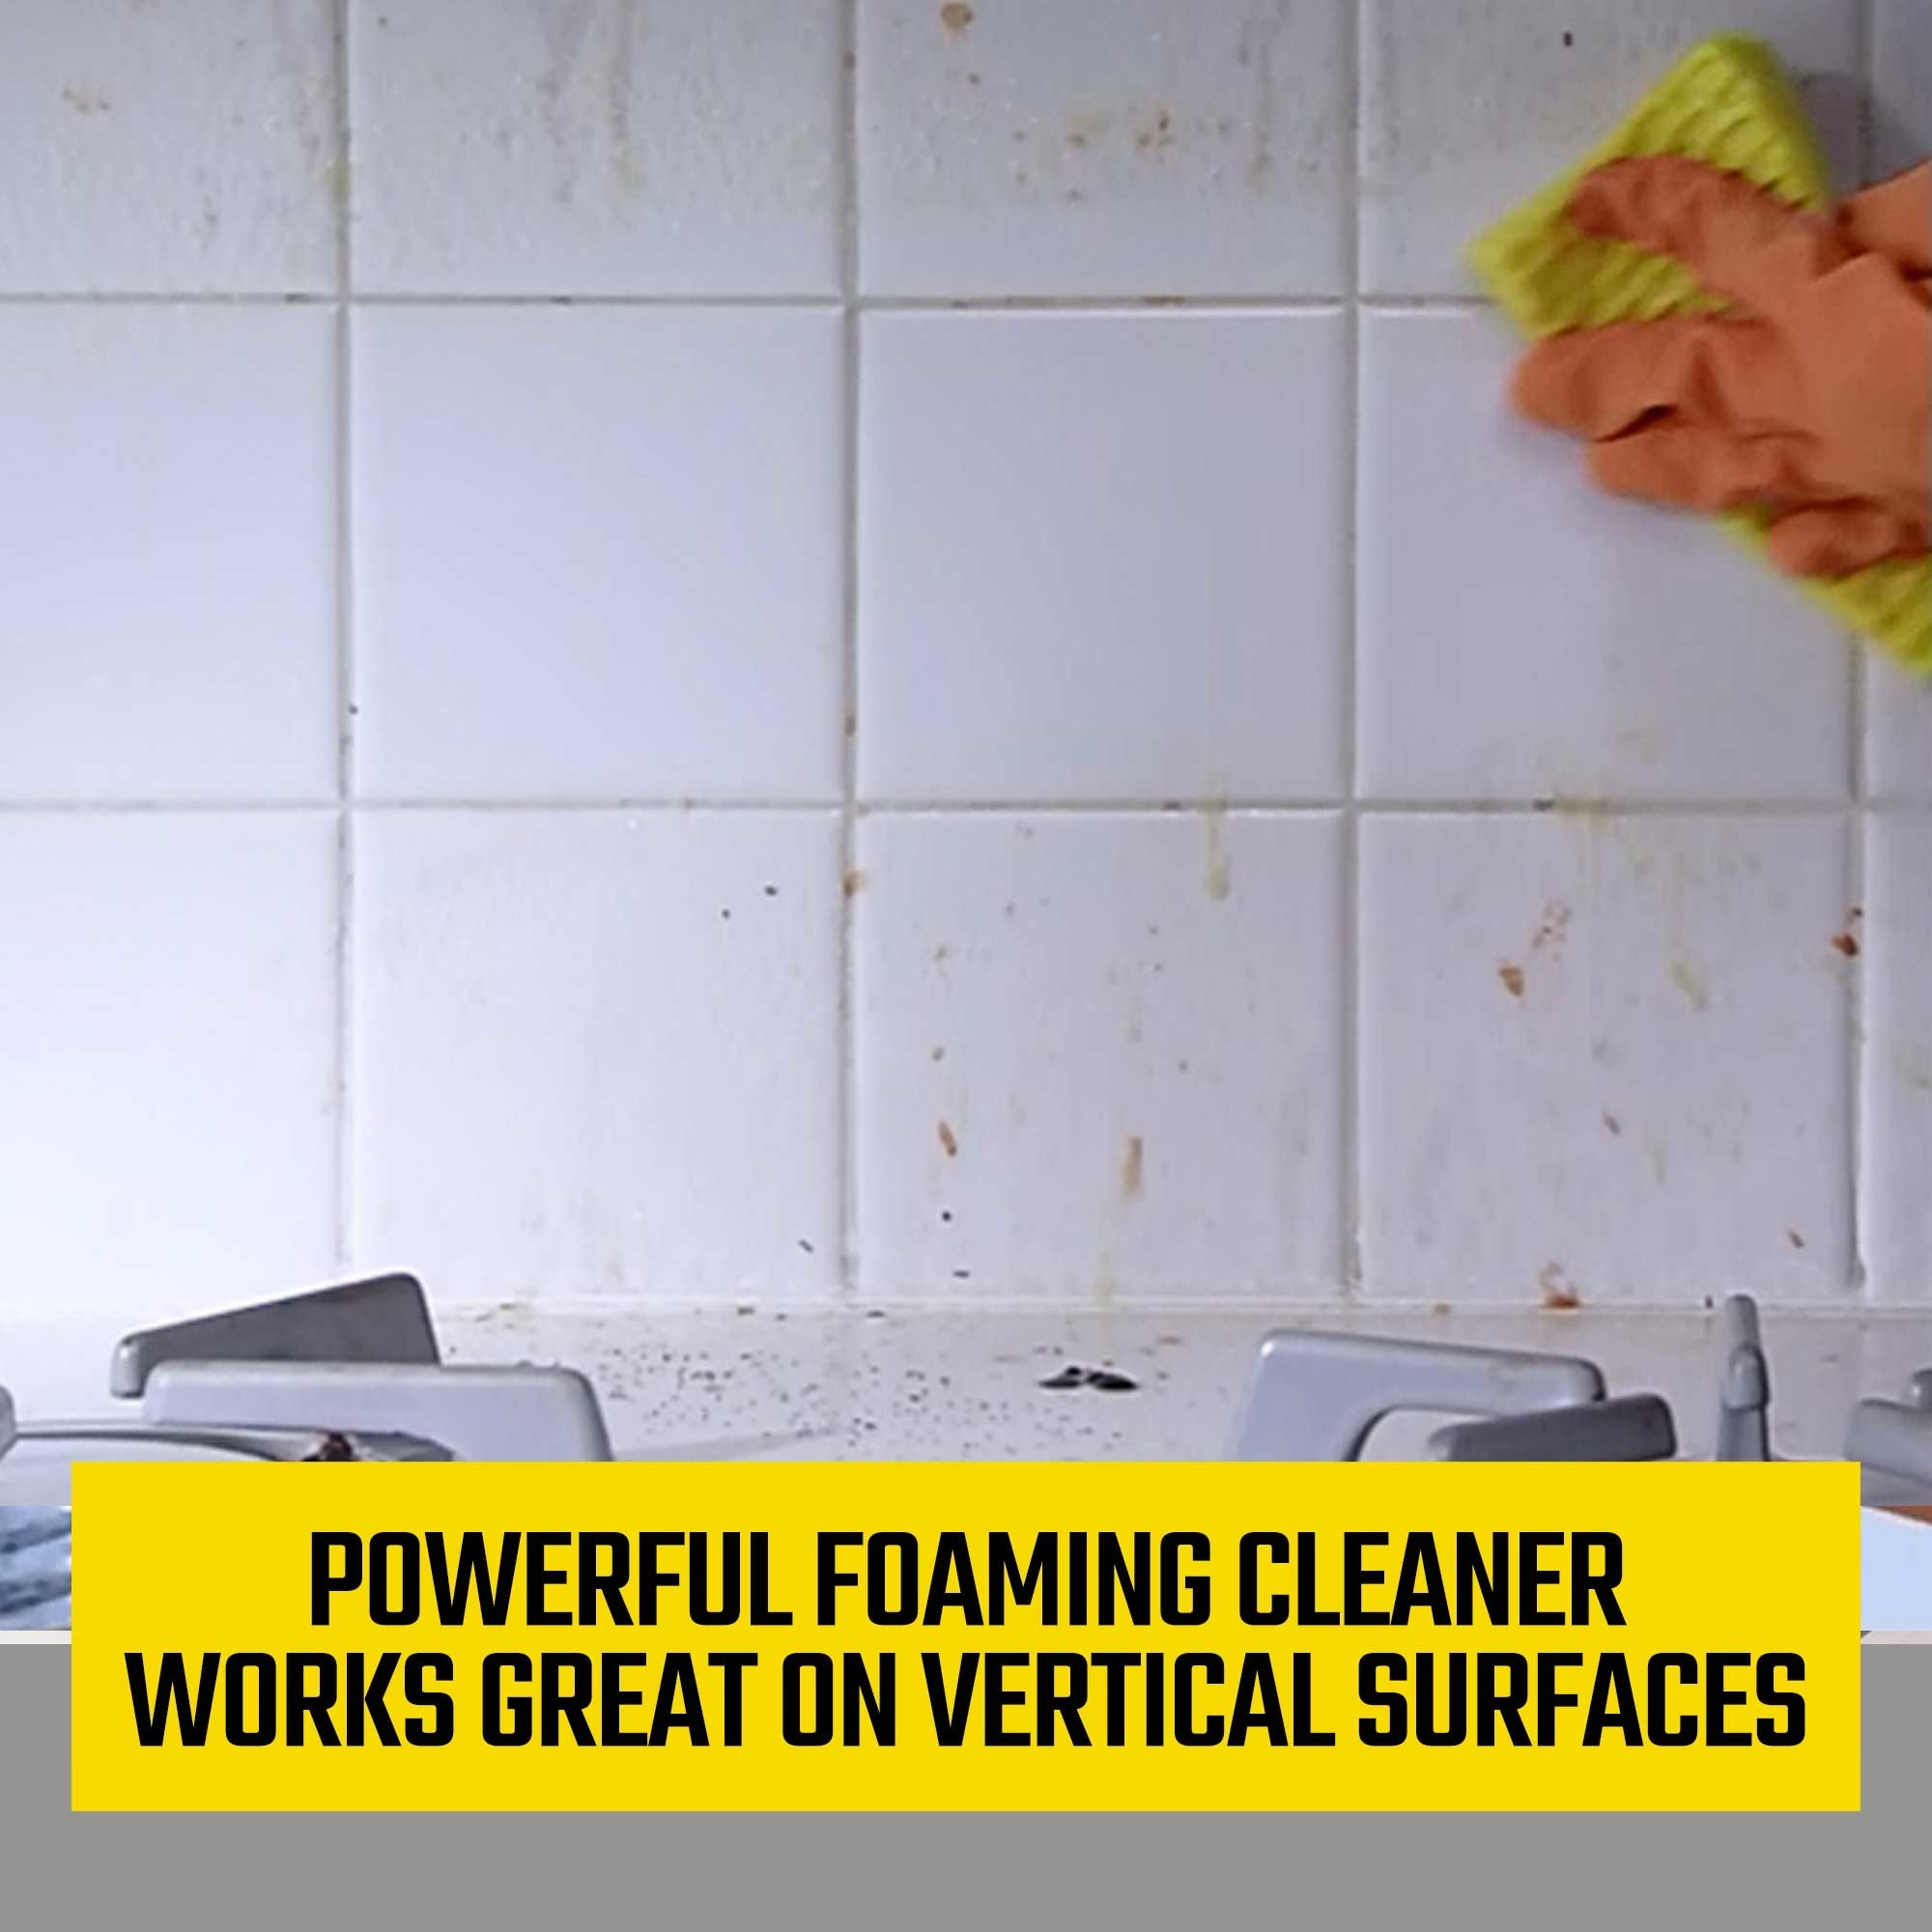 The foaming cleaner in use